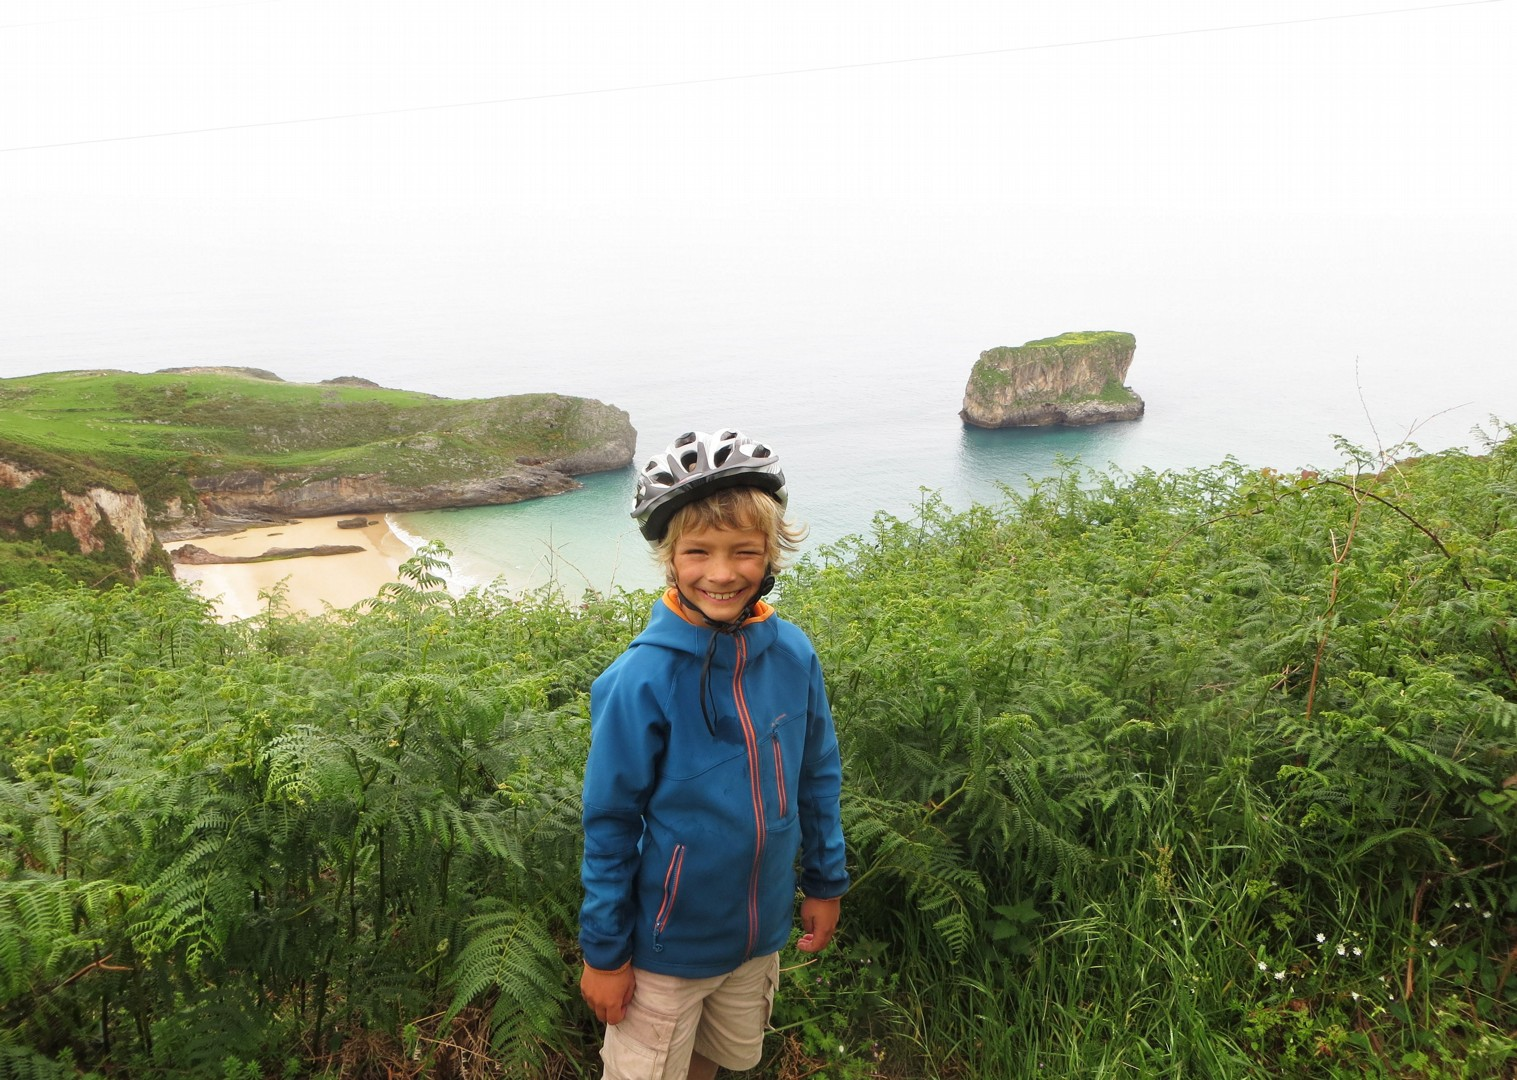 self-guided-family-cycling-holiday-in-spain-asturian-coastal.jpg - Northern Spain - Asturian Coastal Ride - Self-Guided Family Cycling Holiday - Family Cycling